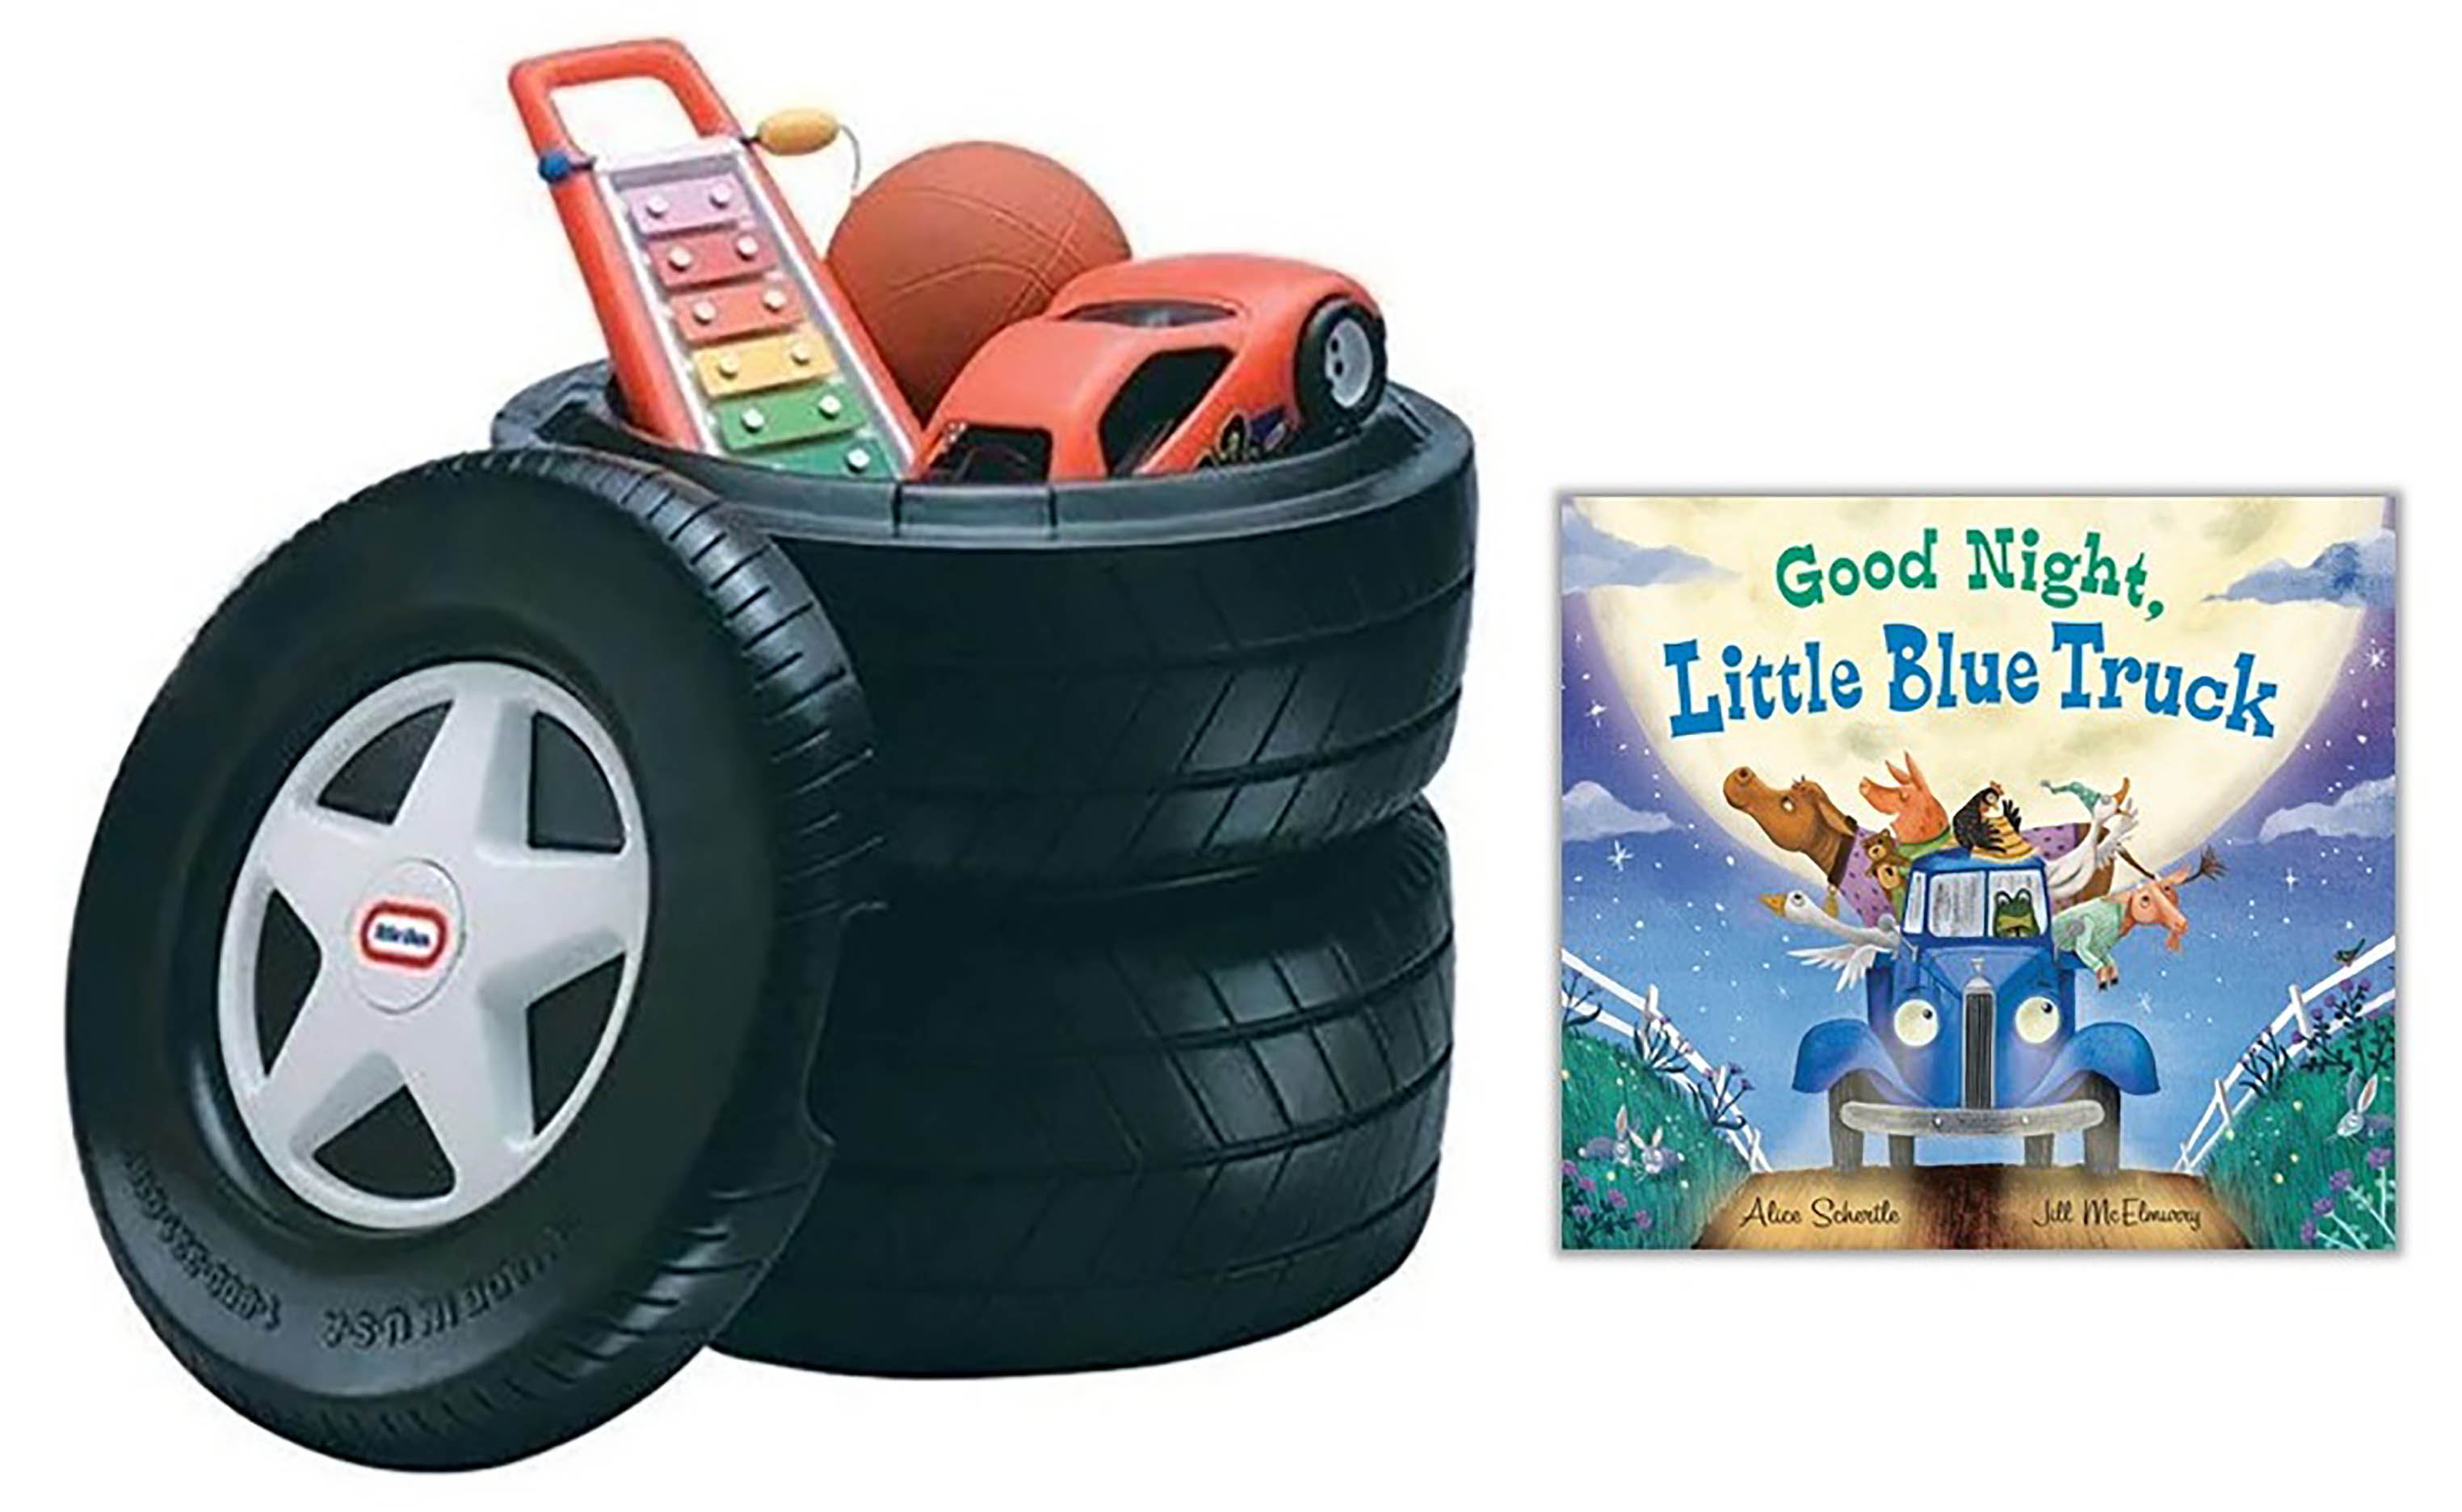 celebrate-picture-books-picture-book-review-Good-Night-Little-Blue-Truck-Toy-Chest-Prize